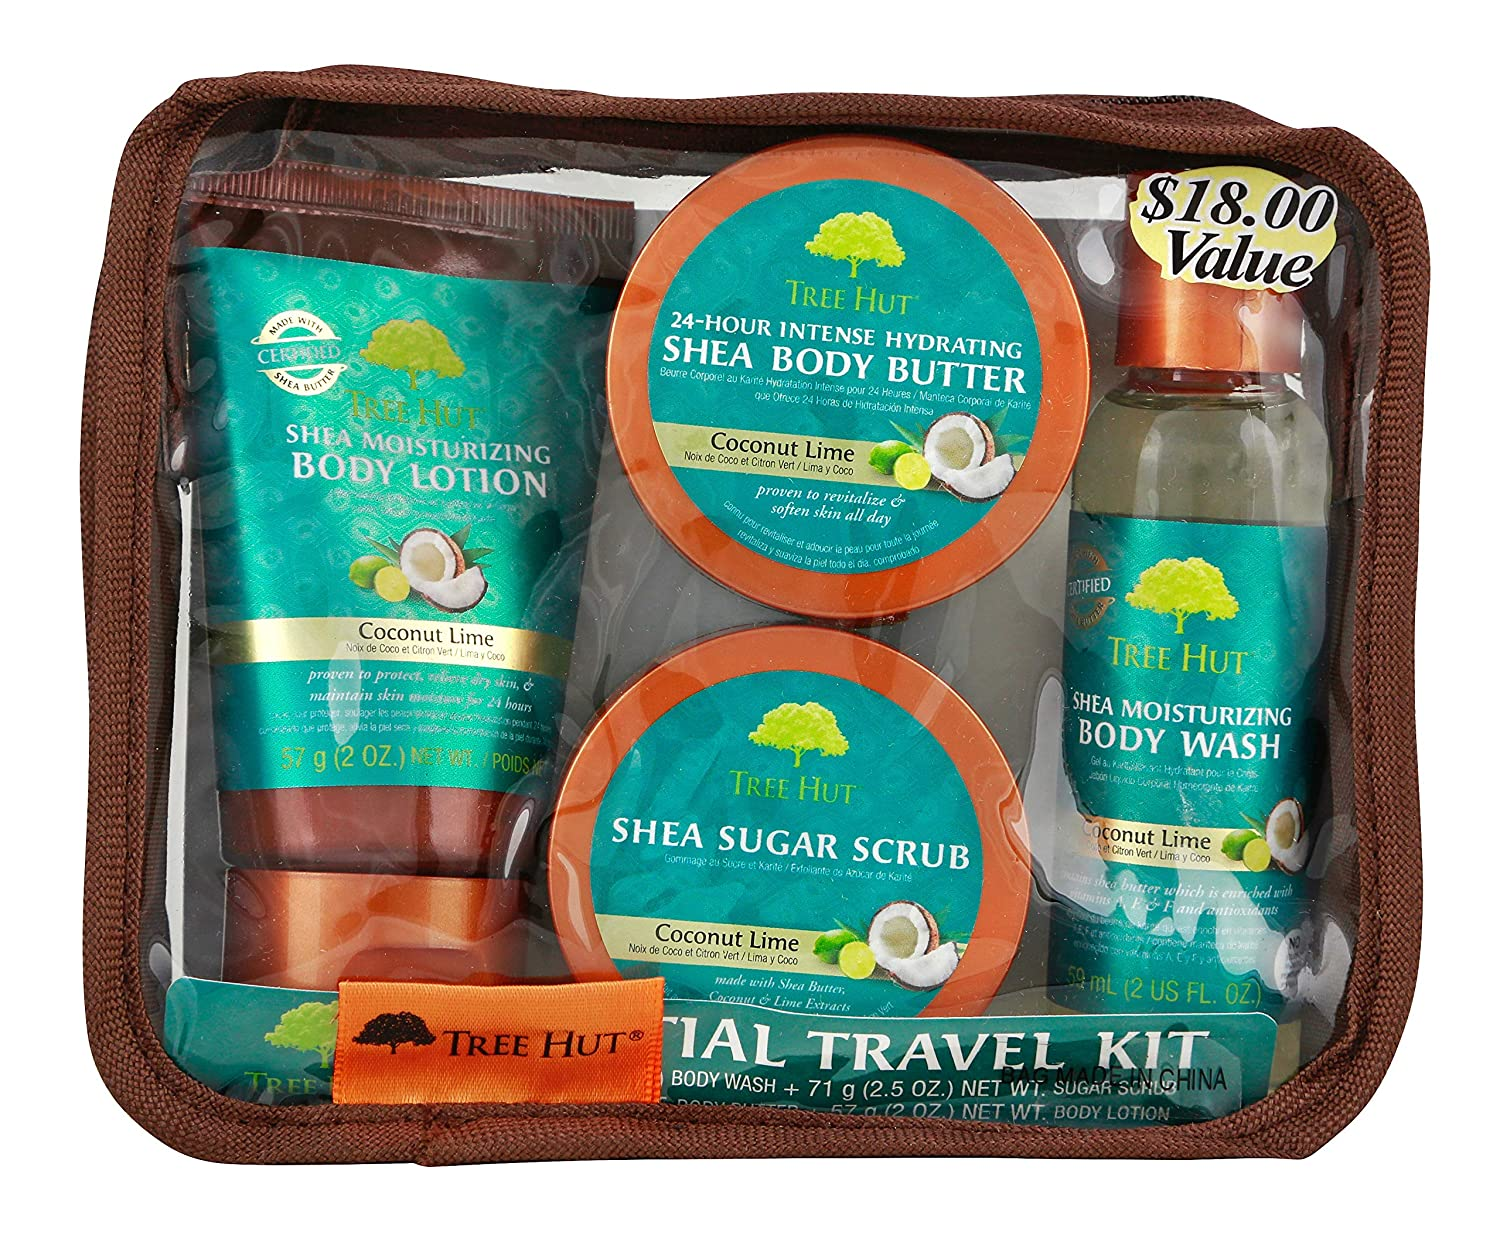 Kit Karte.Tree Hut Essential Travel Kit Coconut Lime 4 Items In One Bag For Nourishing Essential Body Care On The Go